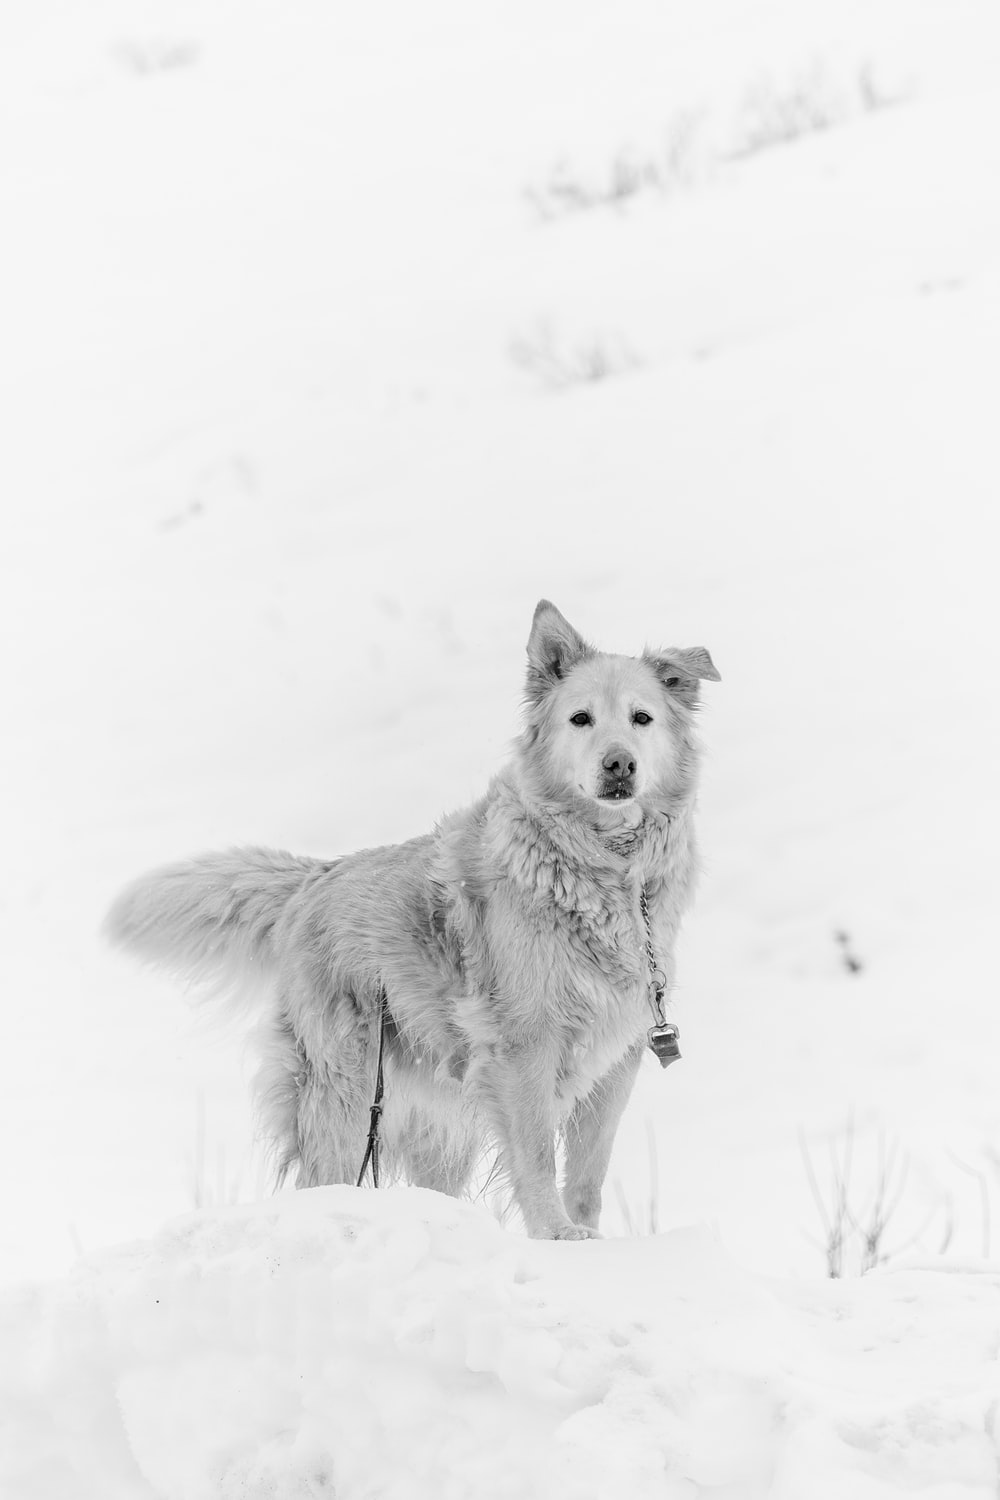 long-coated gray dog standing in snow